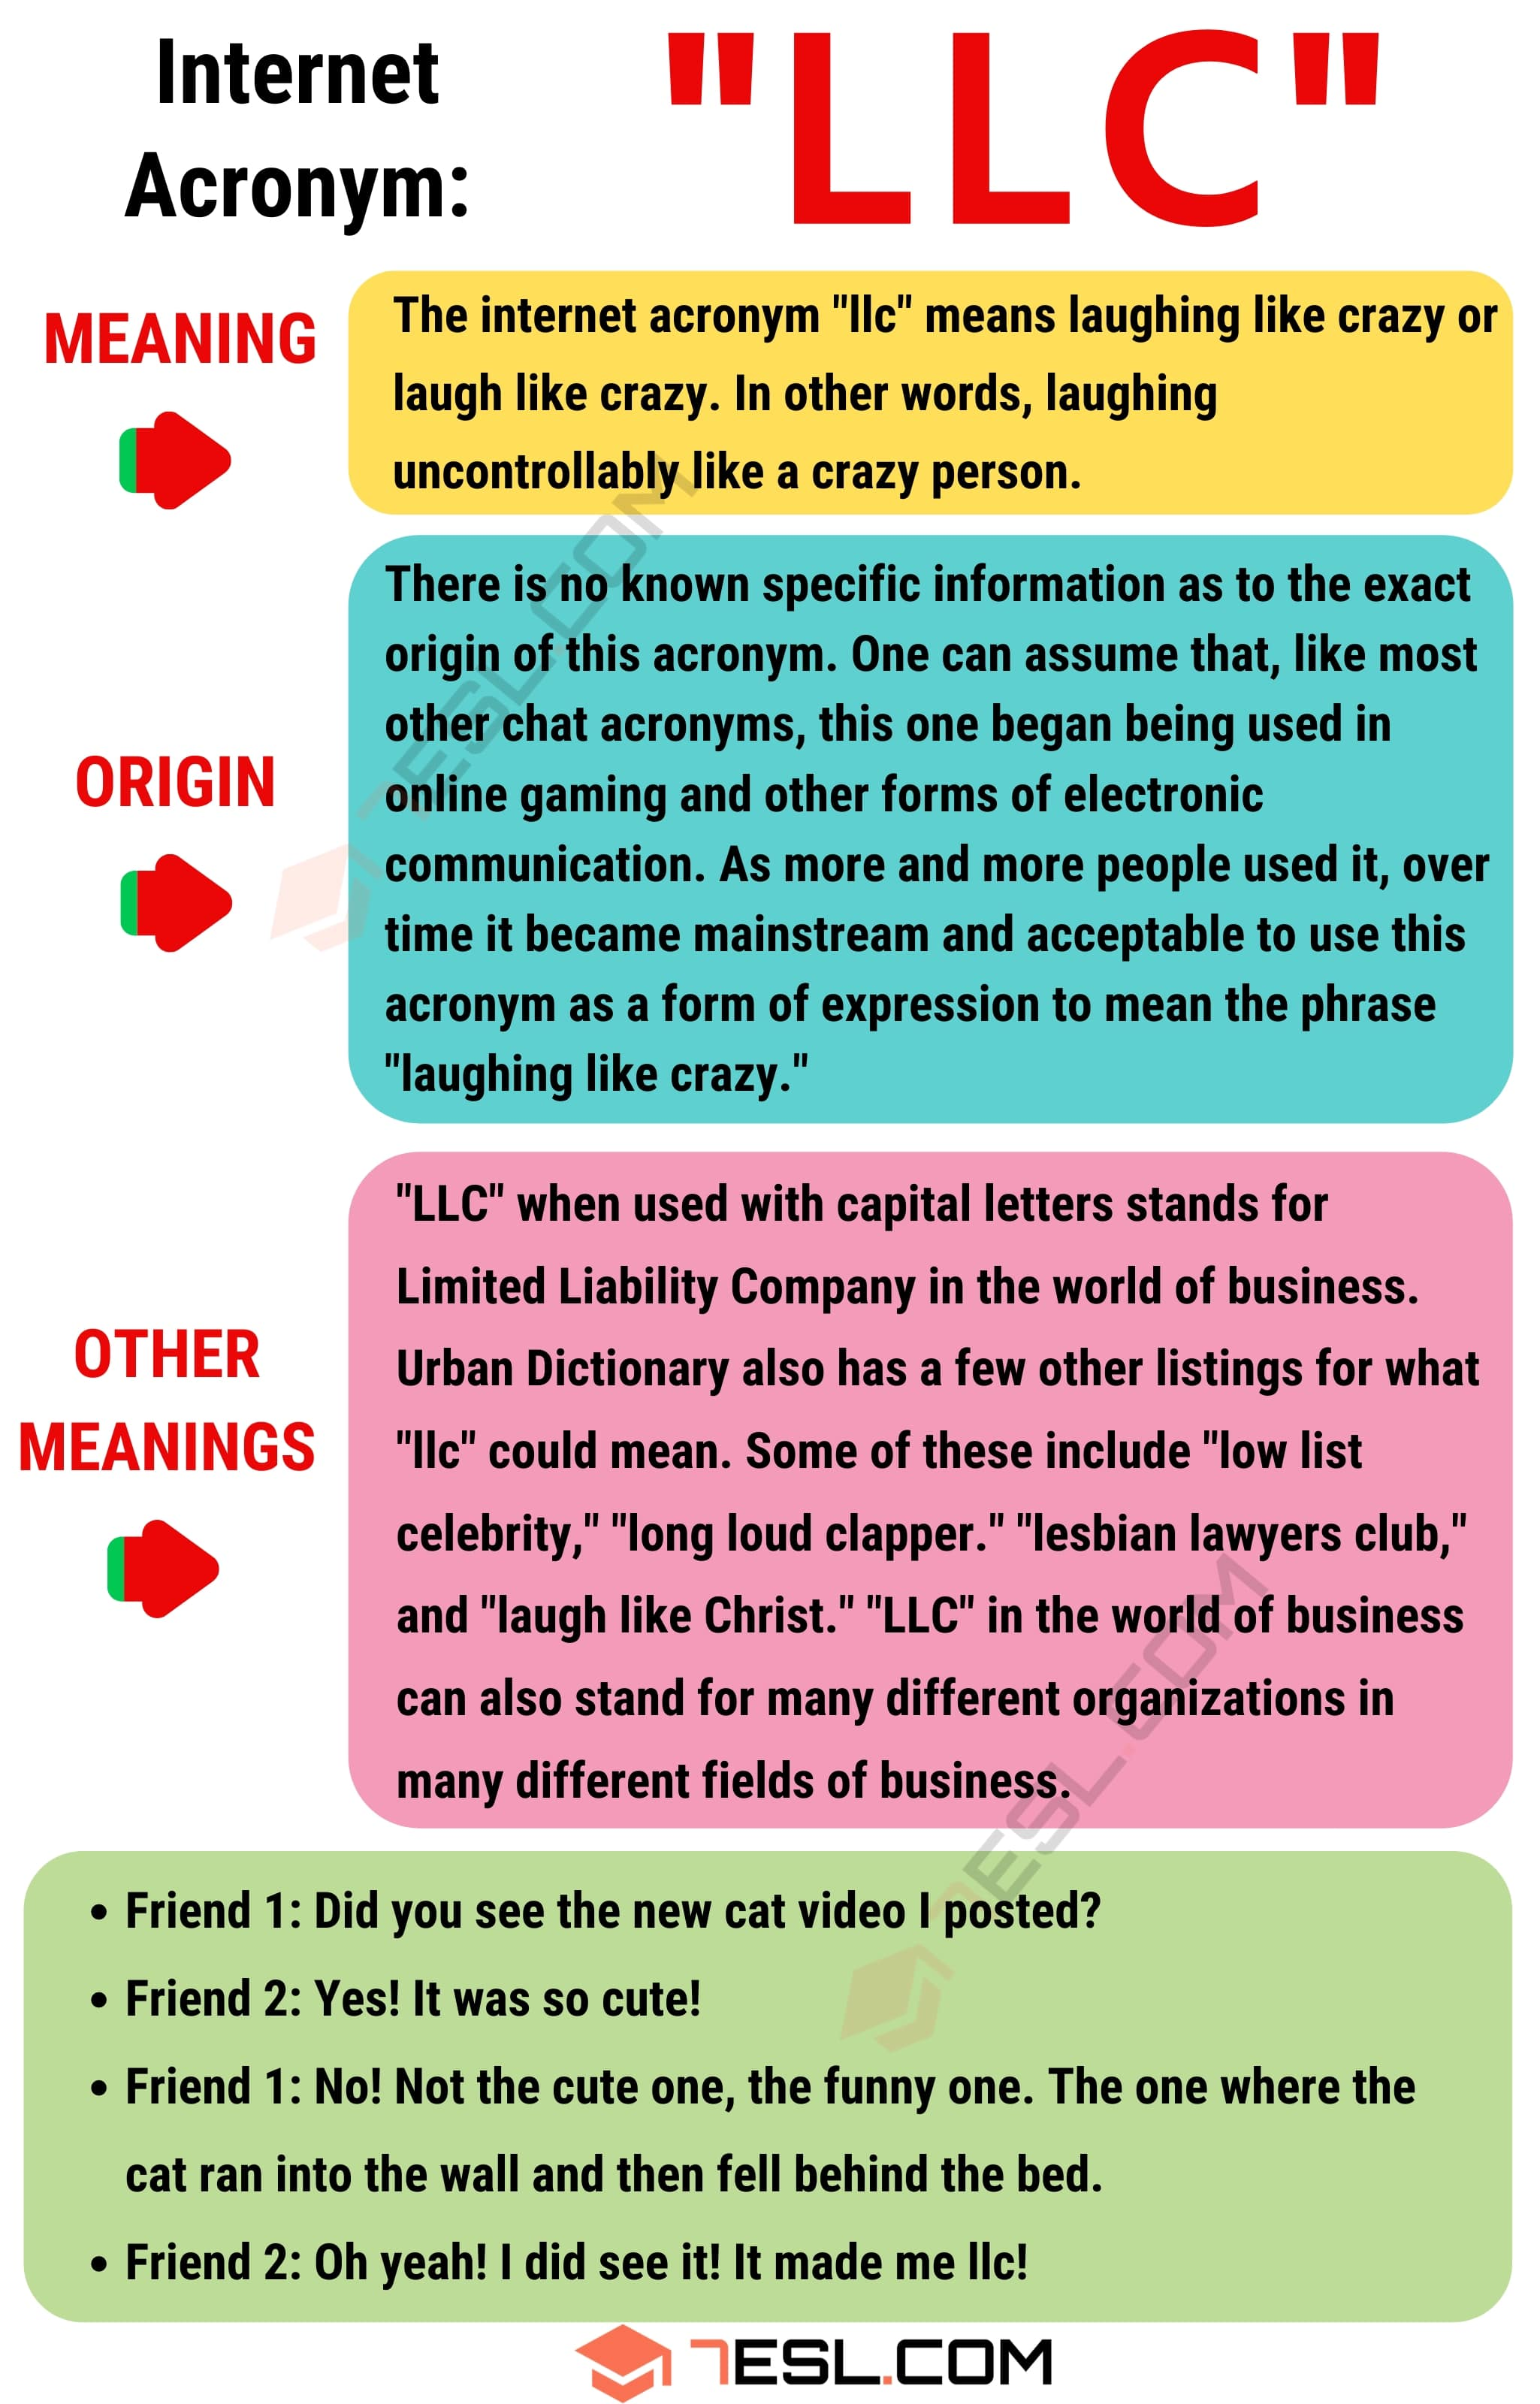 LLC: The Meaning of LLC in Online Conversations